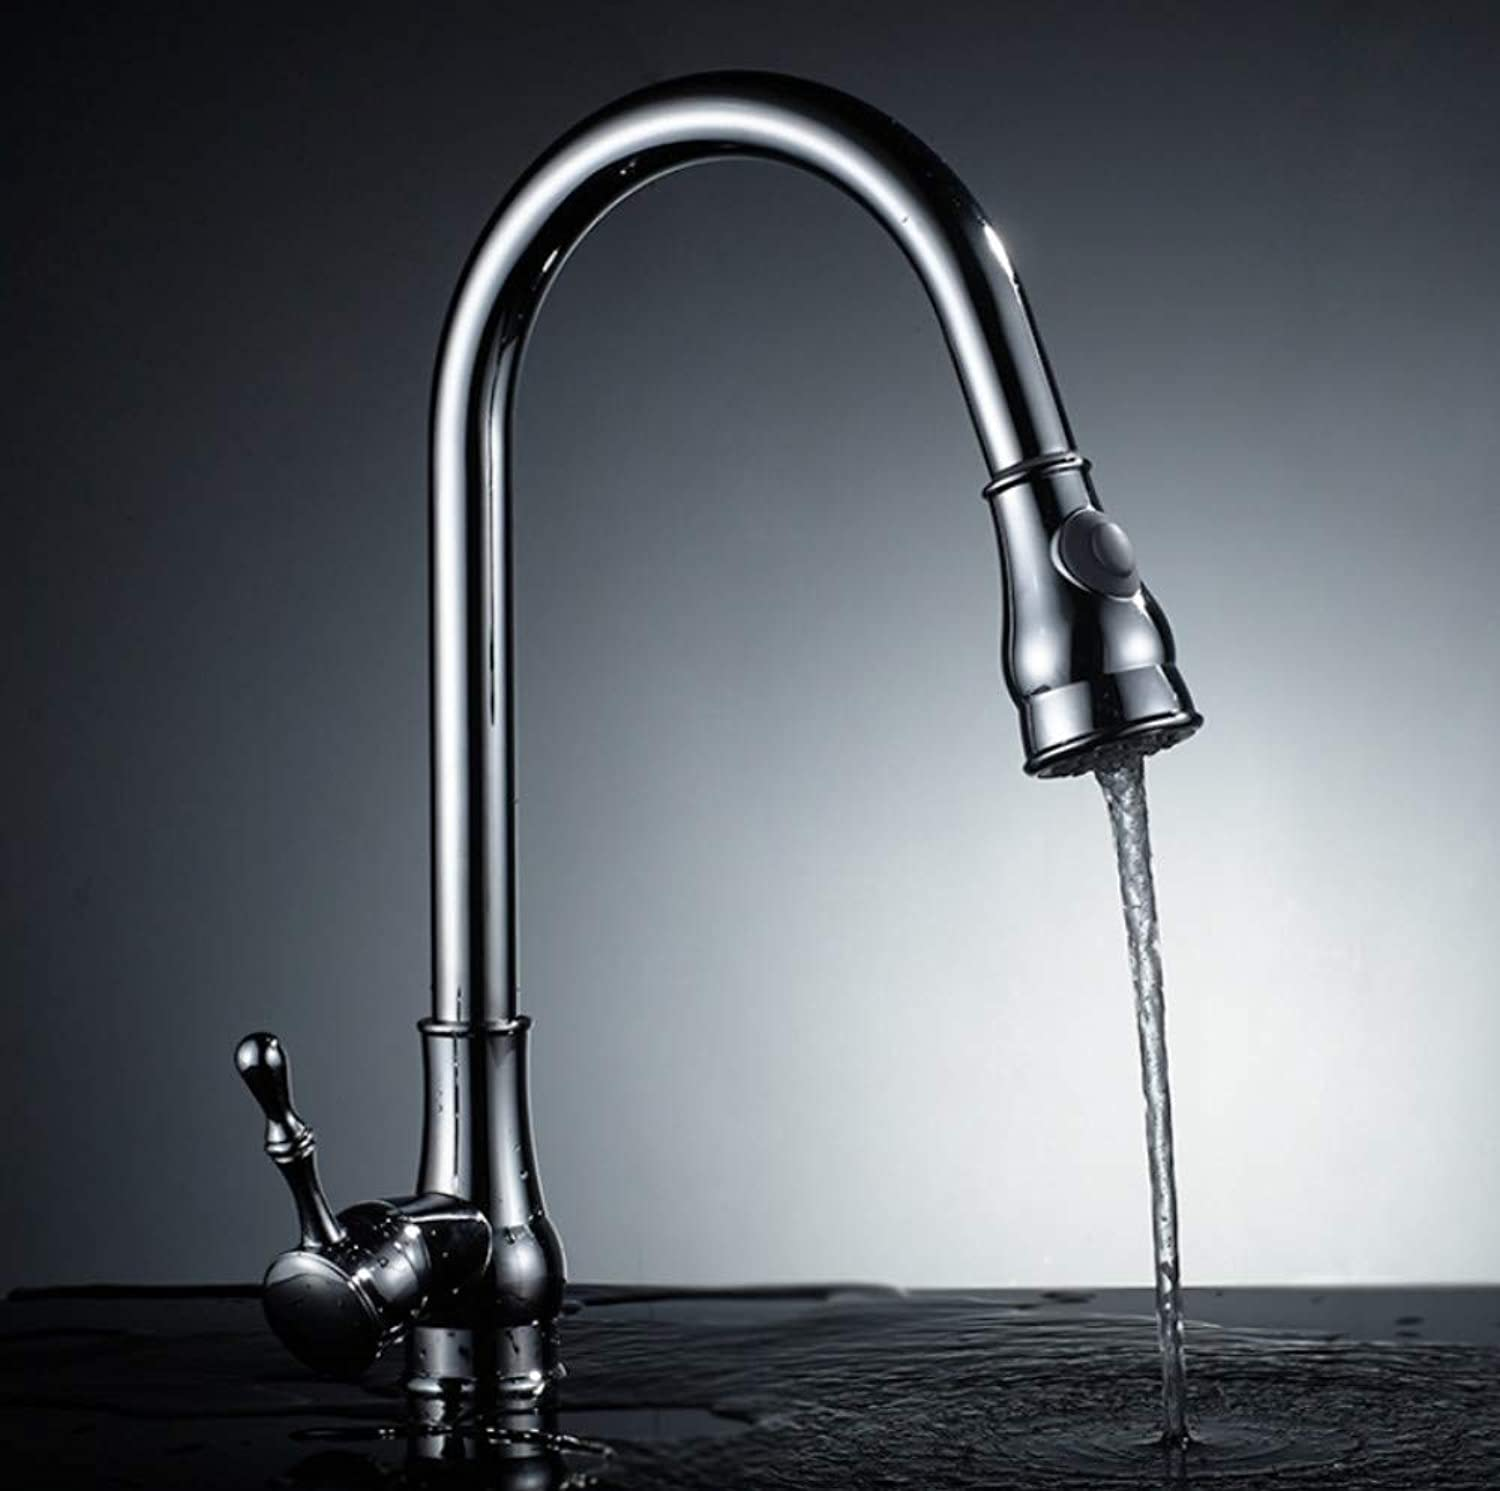 redOOY Pullable kitchen mixer faucet spring basin faucet sink faucet